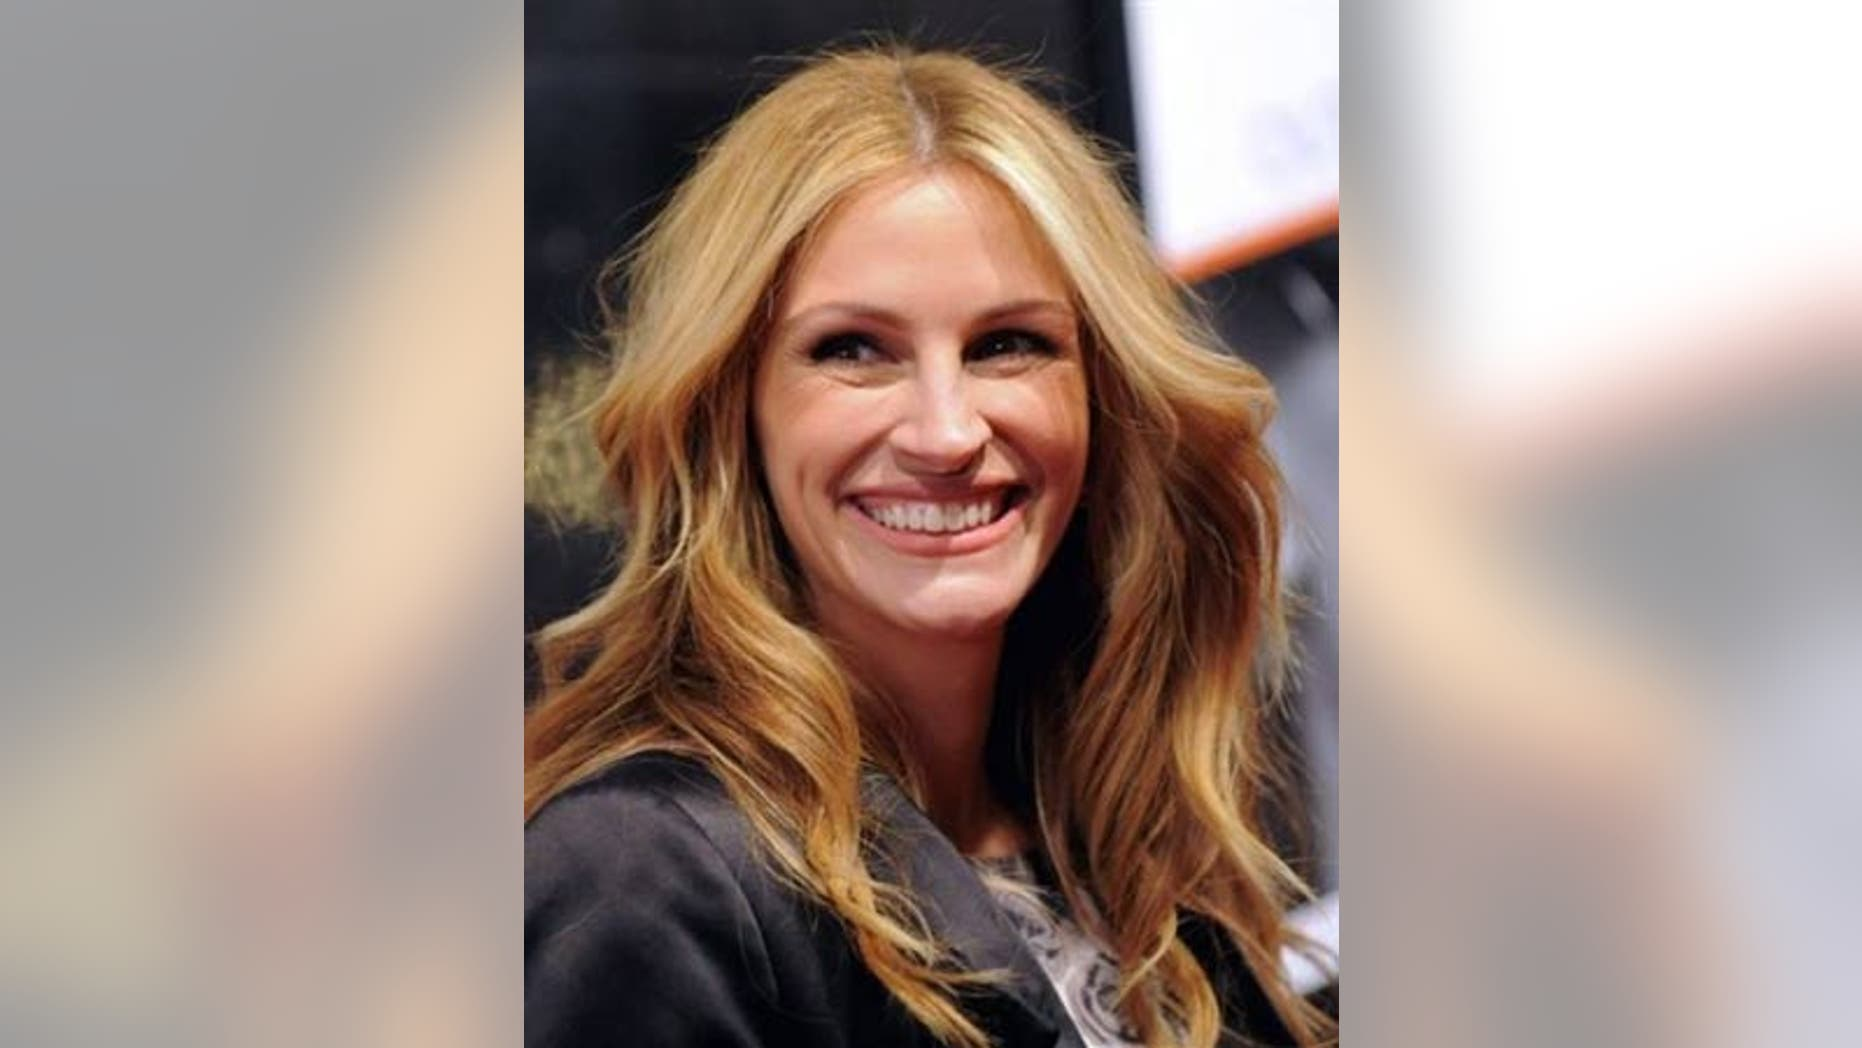 March 16: Julia Roberts attends the premiere for 'Duplicity' at the Ziegfeld Theater in New York.